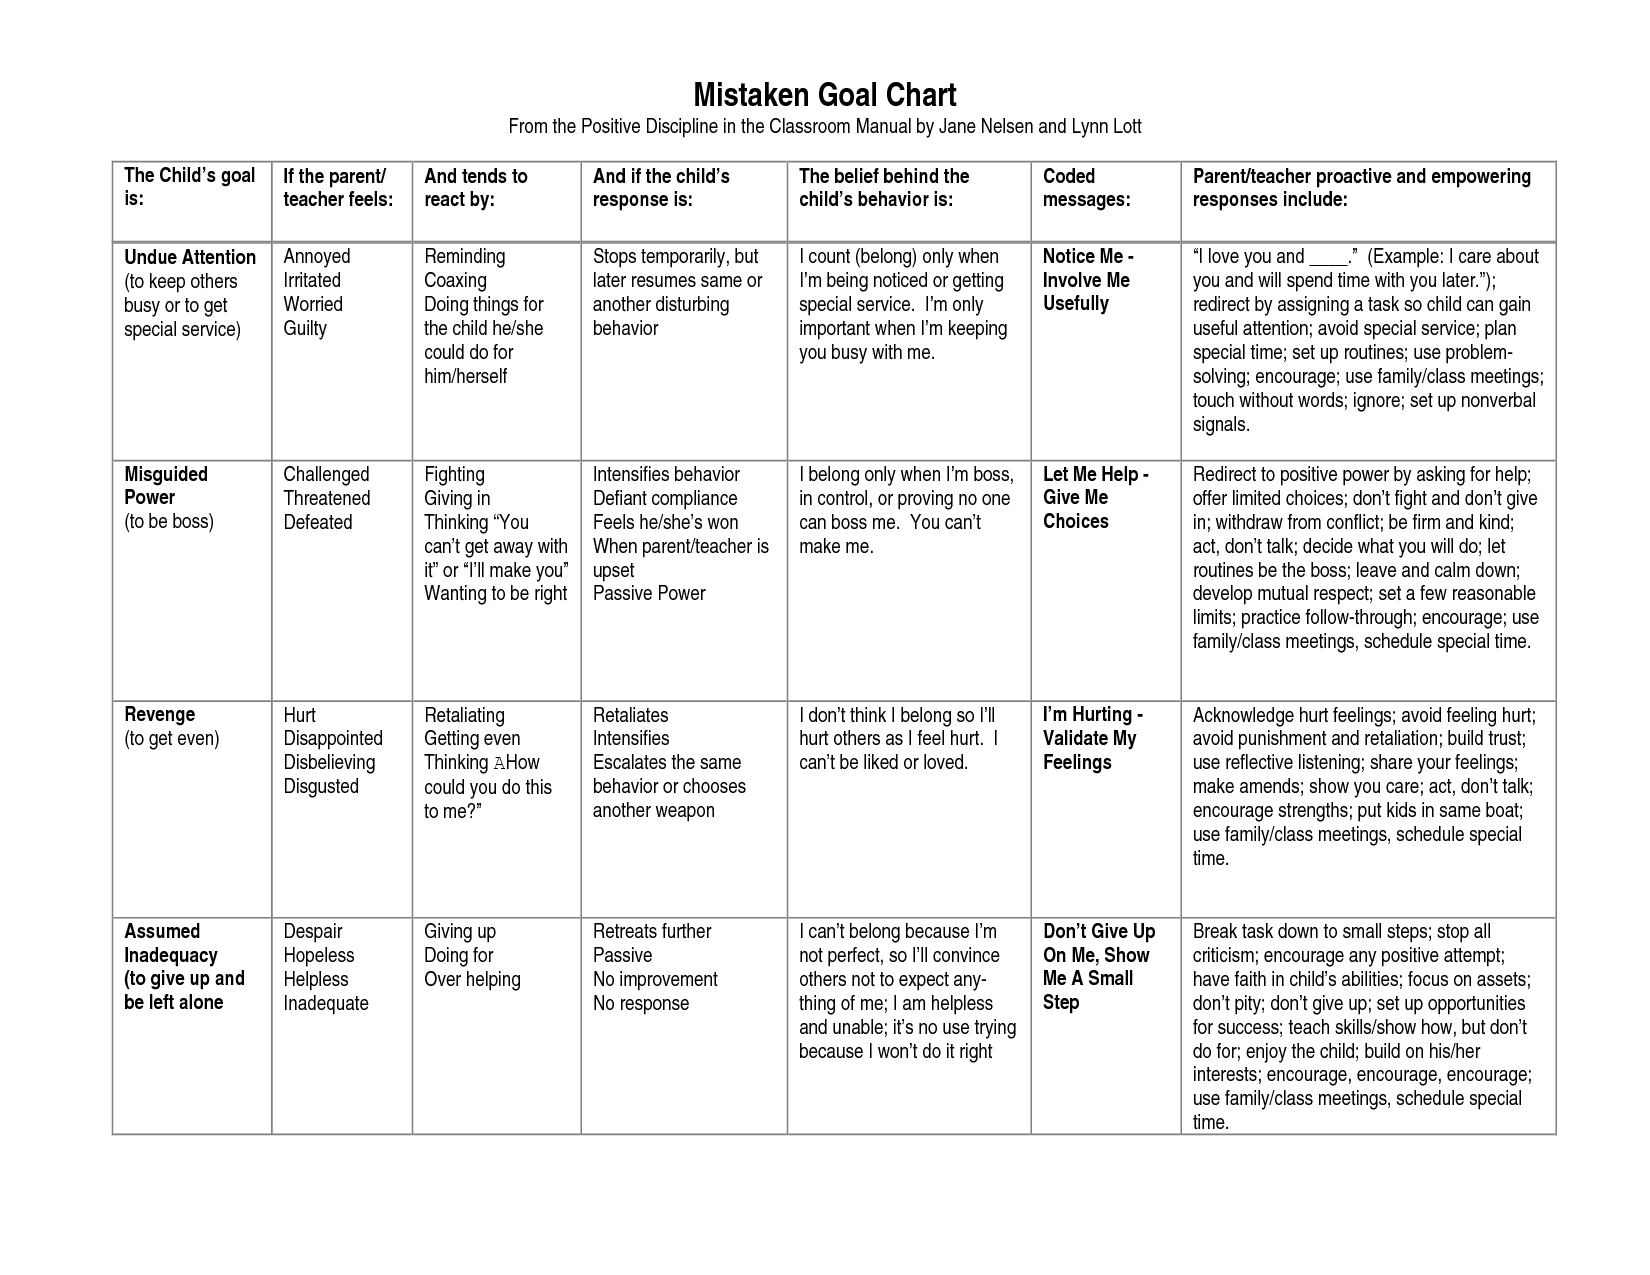 4 Mistaken Goals Chart From The Positive Discipline